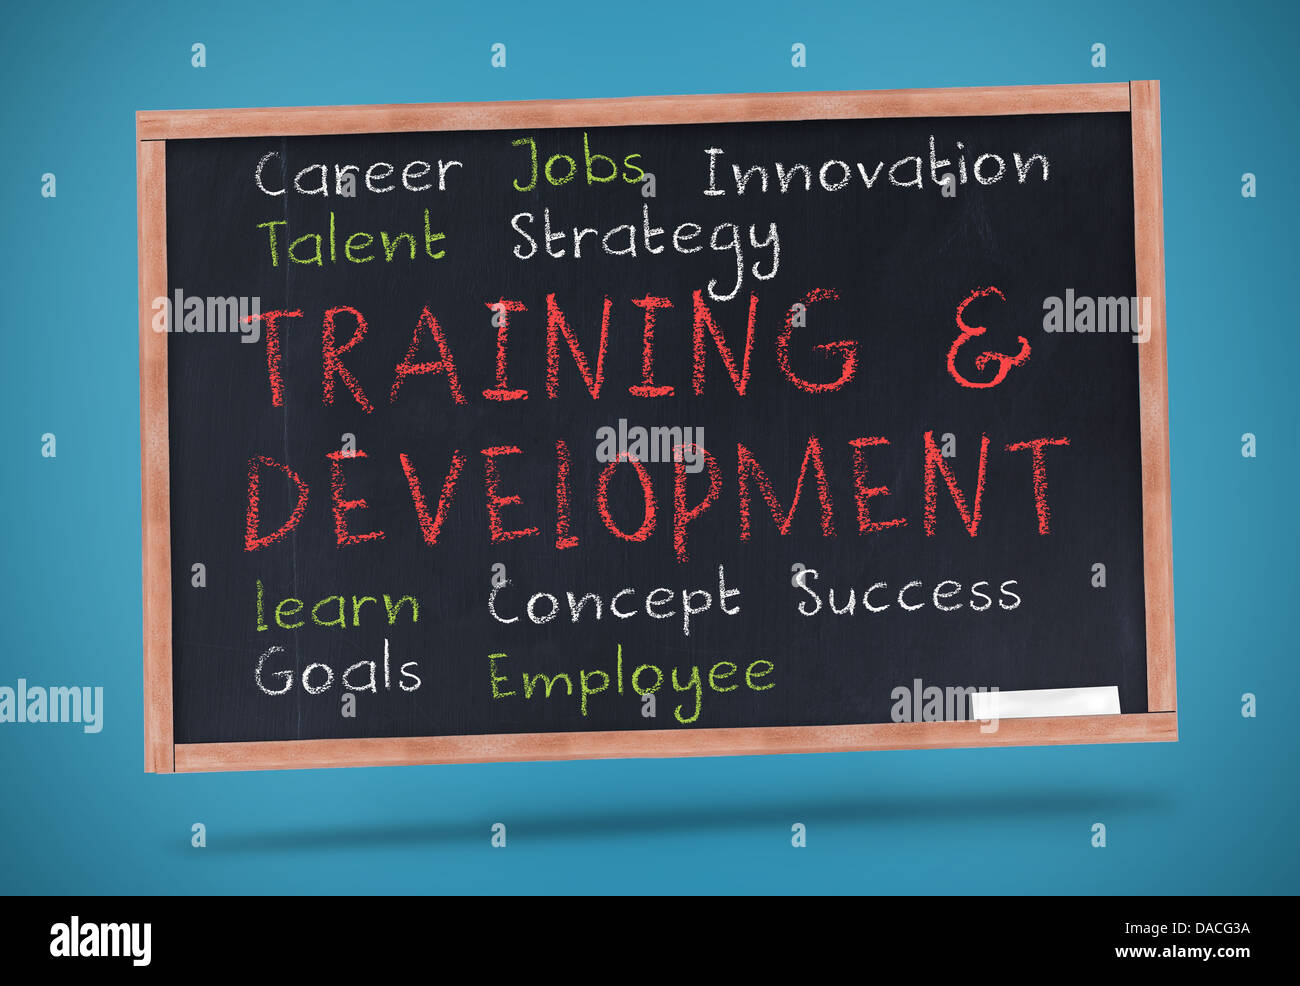 Training and development terms written on a chalkboard - Stock Image